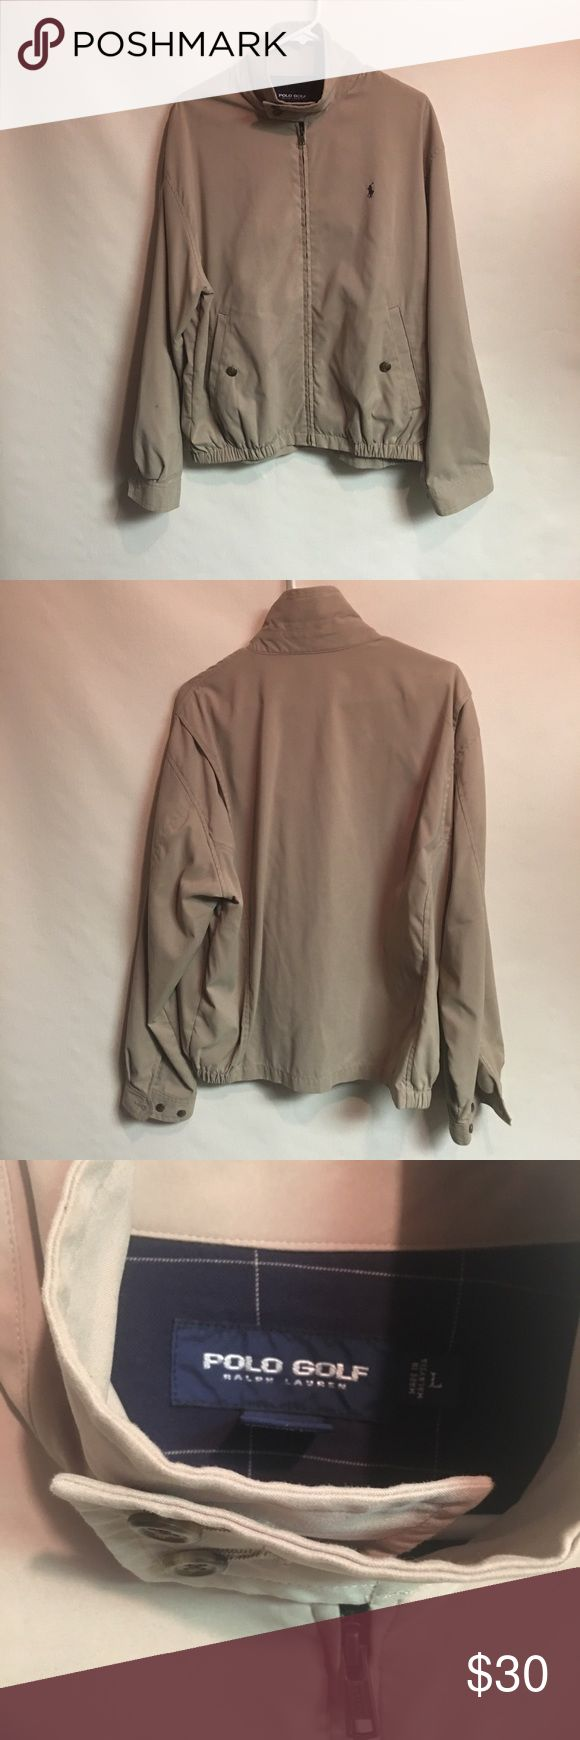 Tan Full Zip Ralph Lauren Polo Golf Jacket Tan Ralph Lauren Polo Golf Jacket. This jacket is a Men's Large. It has been gently worn and is in good condition. Polo by Ralph Lauren Jackets & Coats Bomber & Varsity